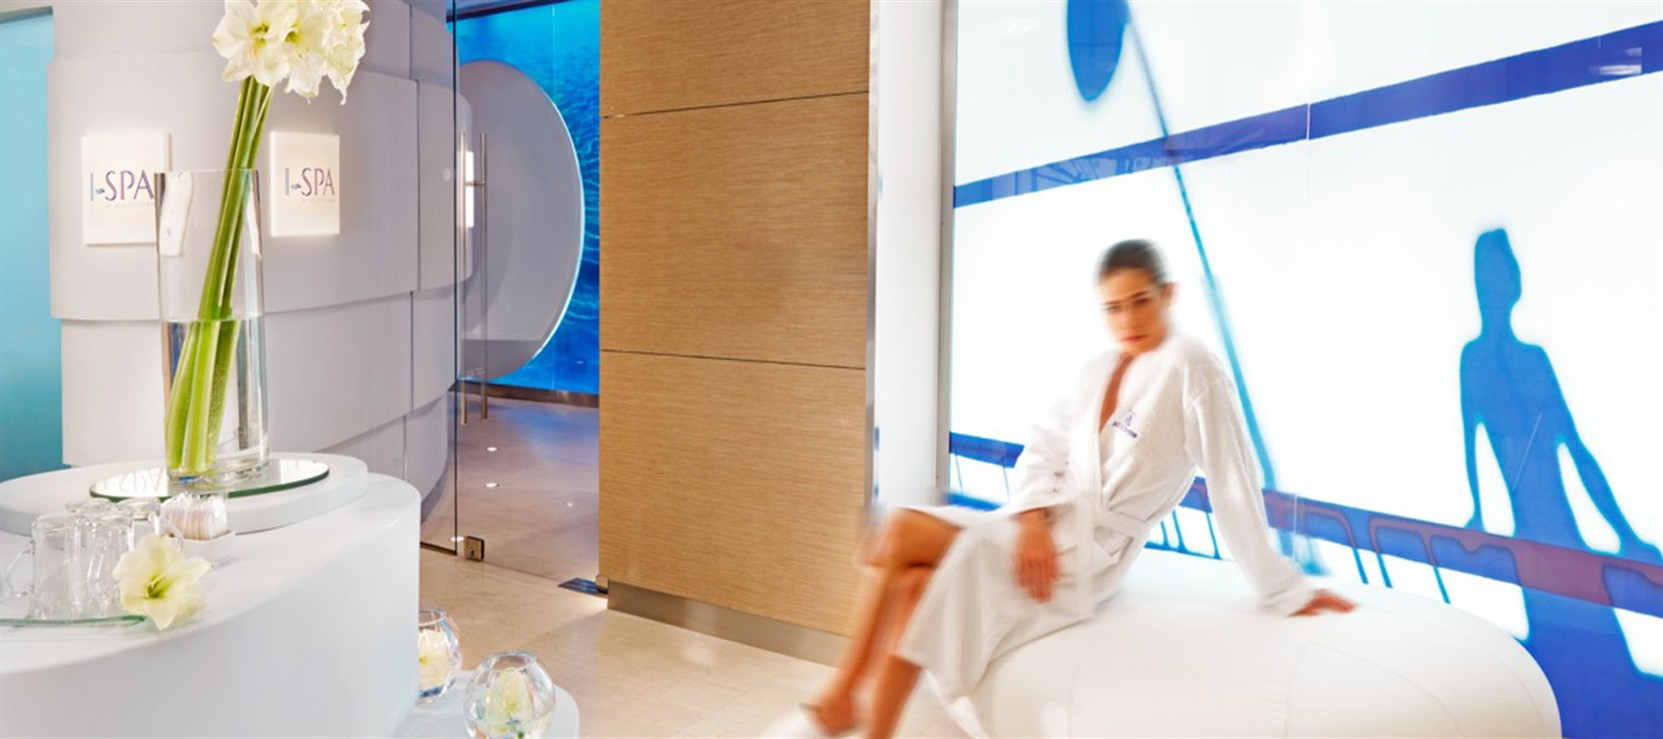 I-SPA | ATHENAEUM INTERCONTINENTAL HOTEL